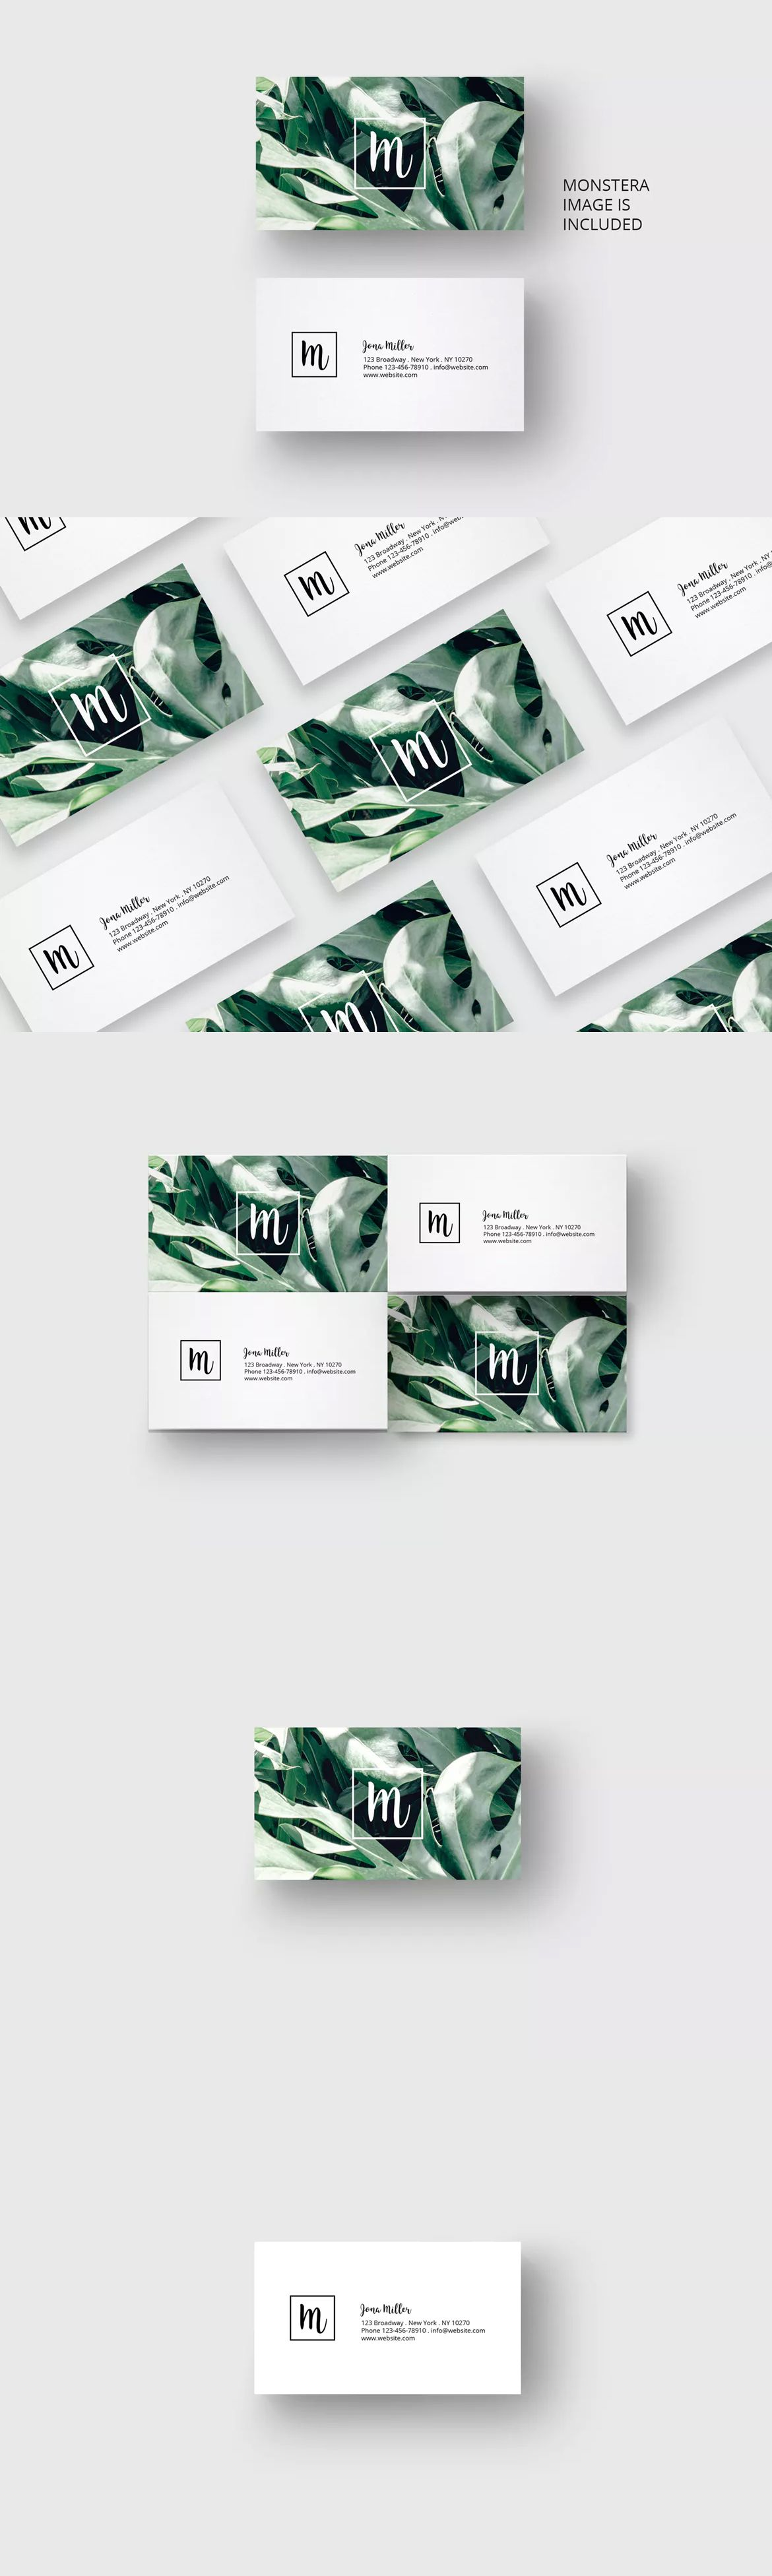 Business card with monstera leaf design template psd us size business card with monstera leaf design template psd us size reheart Choice Image